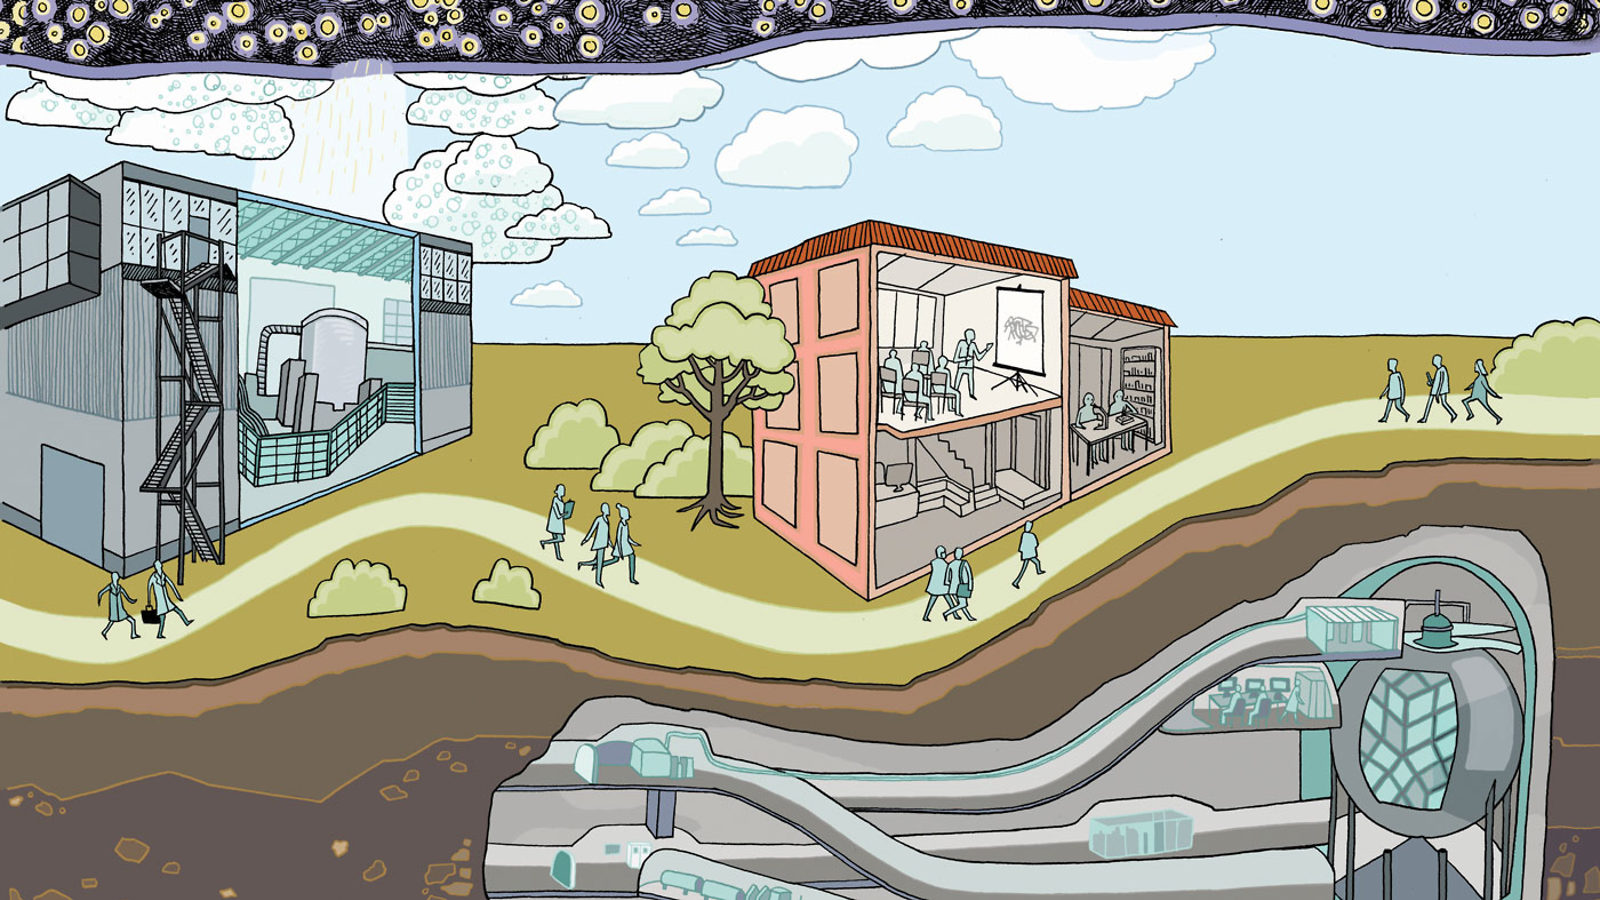 Illustration of Research Worlds: two buildings above ground, facility underground. People walking above ground